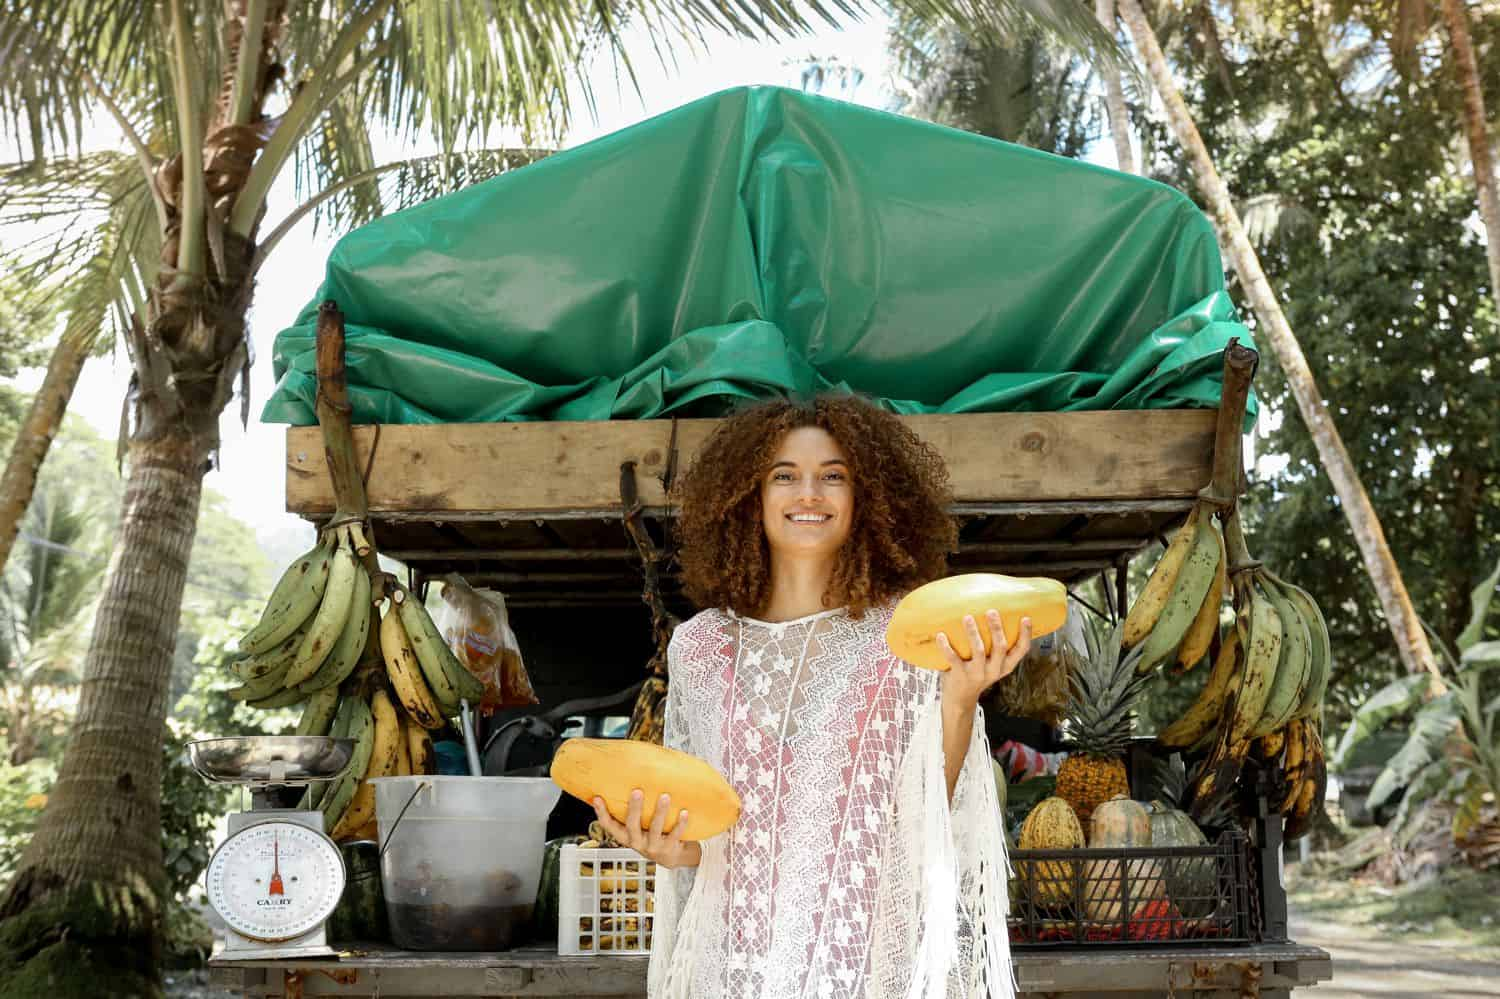 A woman posing in front of a fruit stand